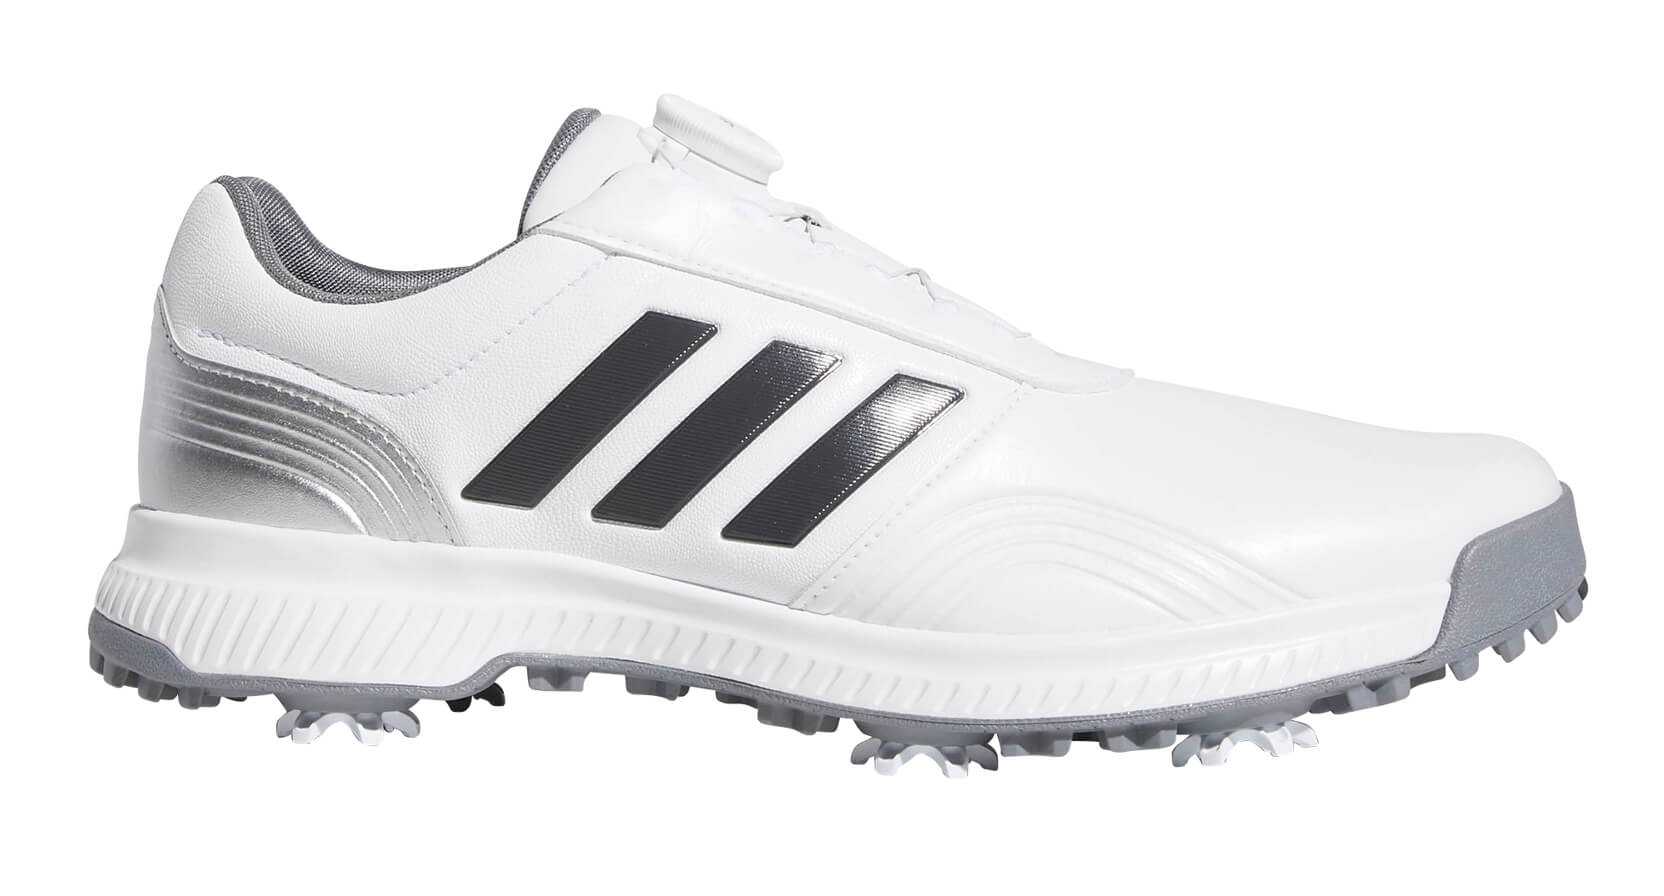 c7cc637b013 Details about Adidas CP Traxion BOA Golf Shoes White Silver 2019 Men s New  - Choose Size